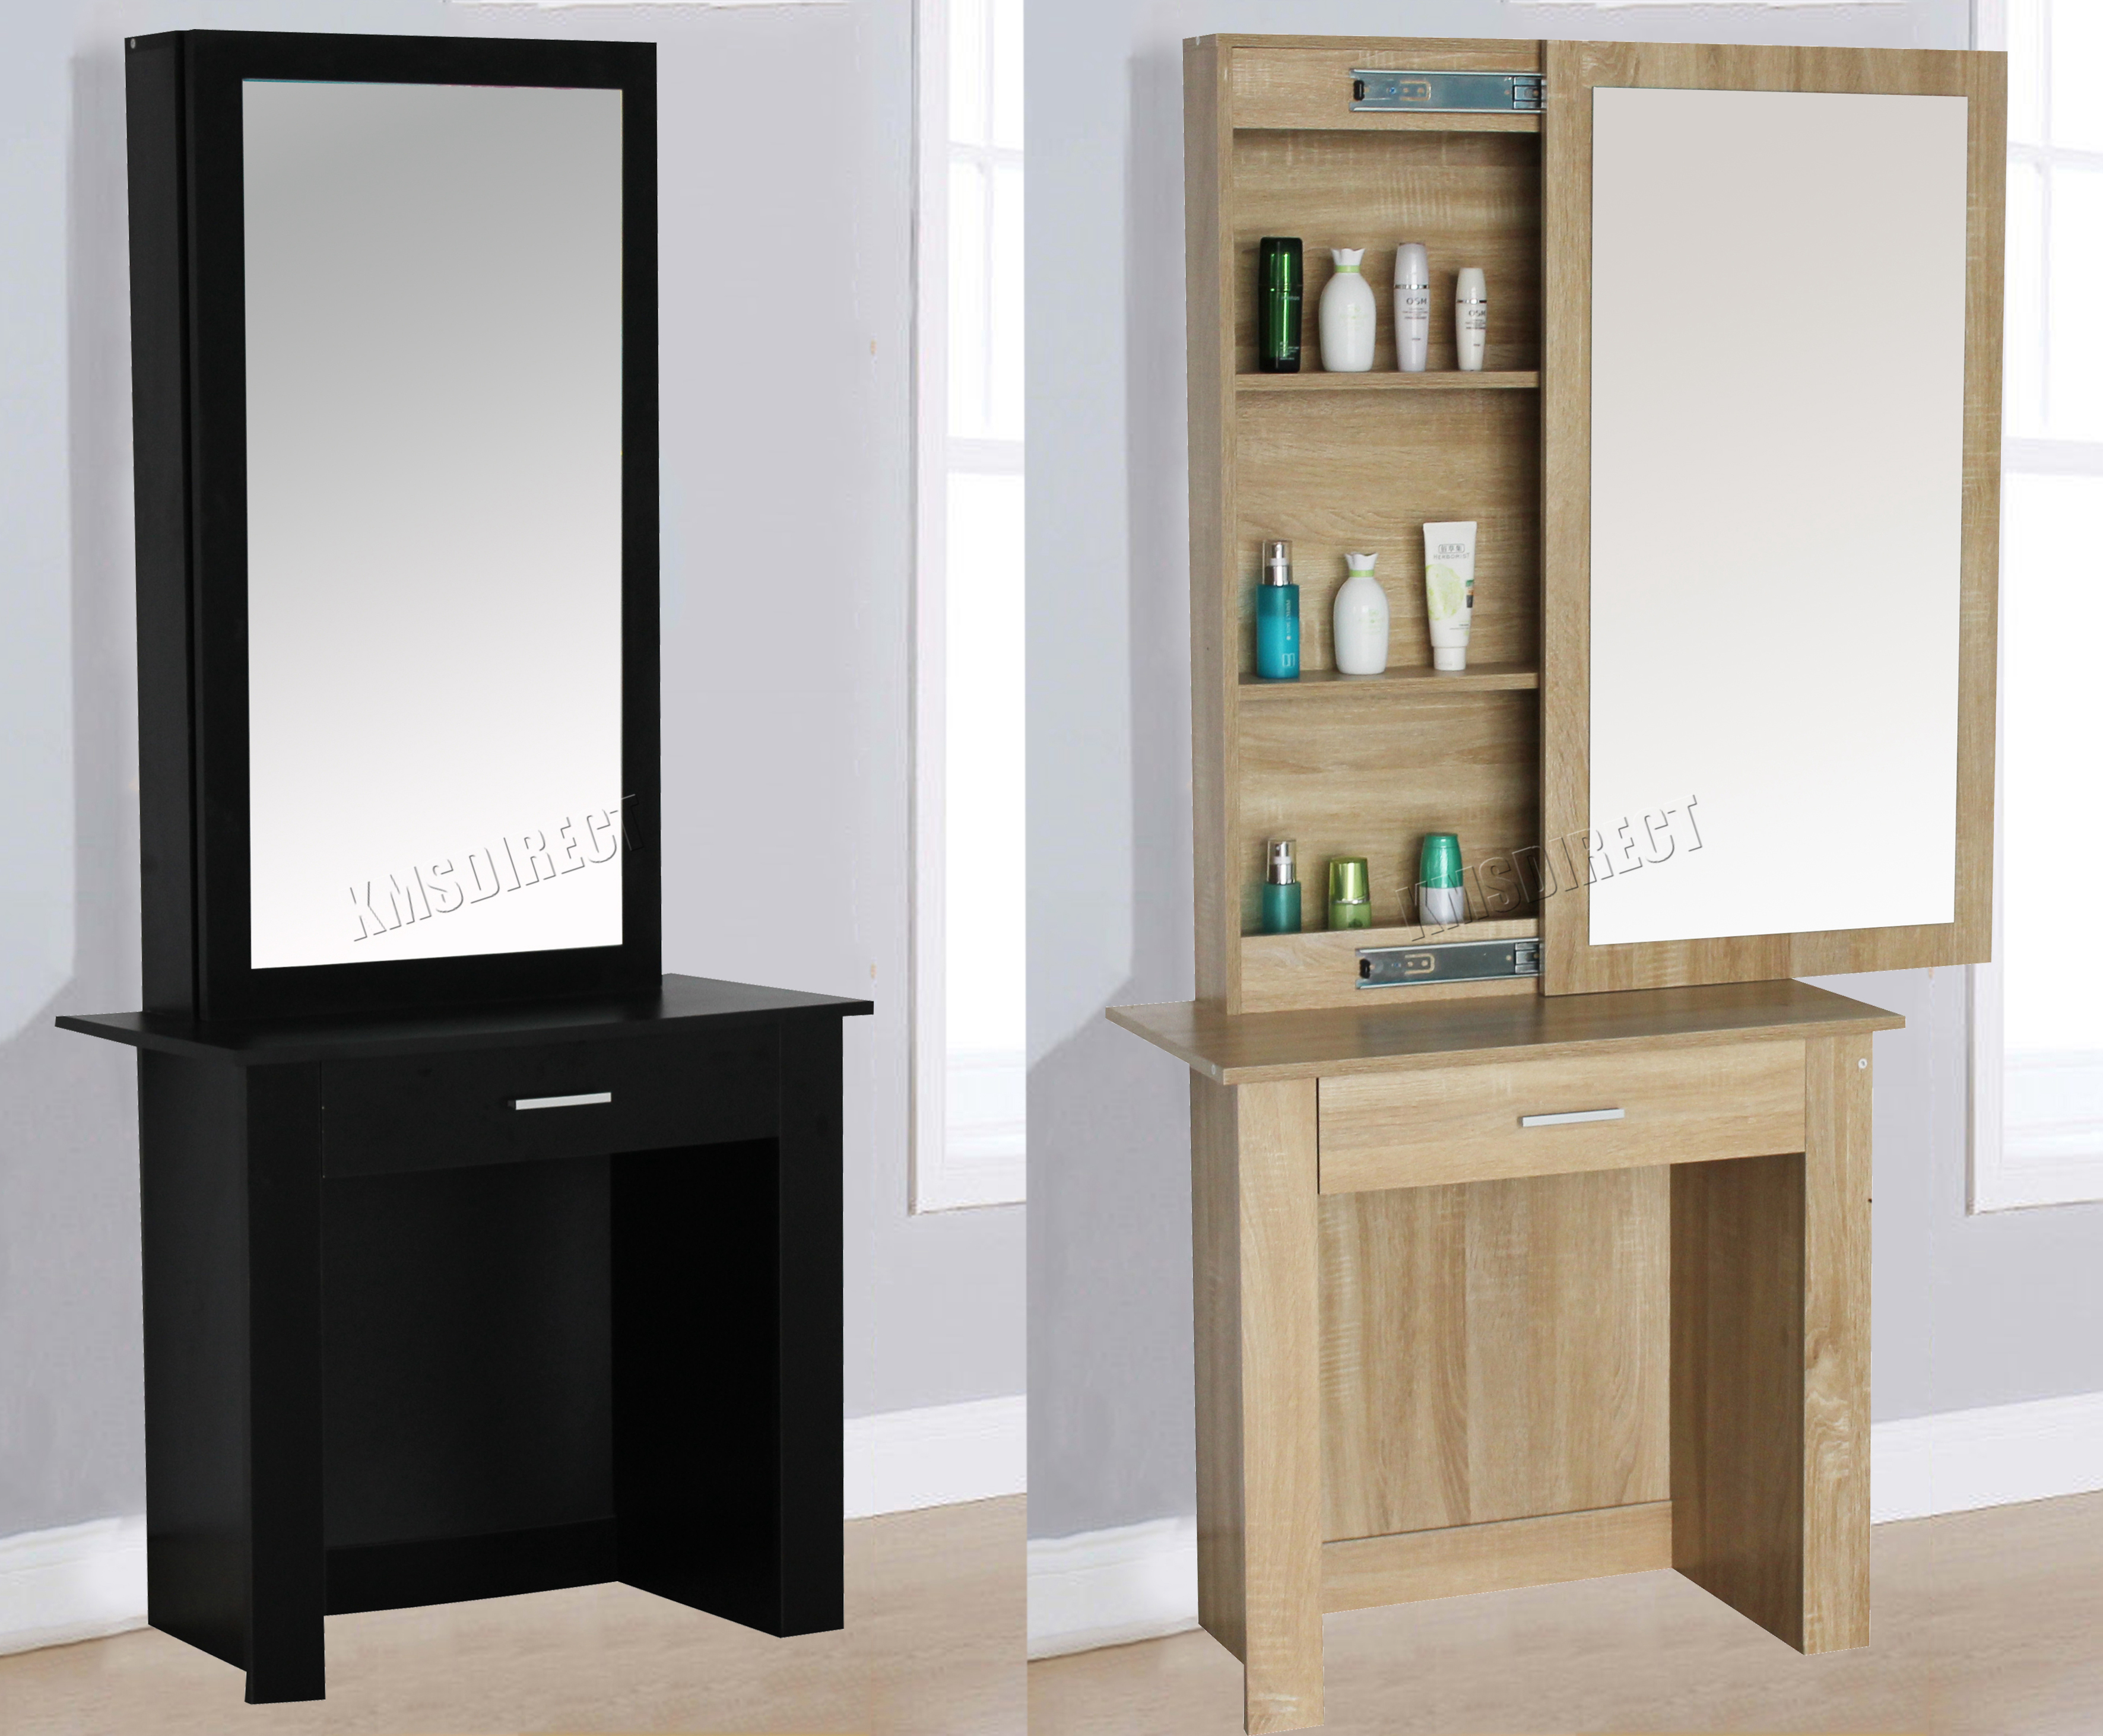 FoxHunter Wooden Makeup Jewelry Dressing Table With Sliding Mirror